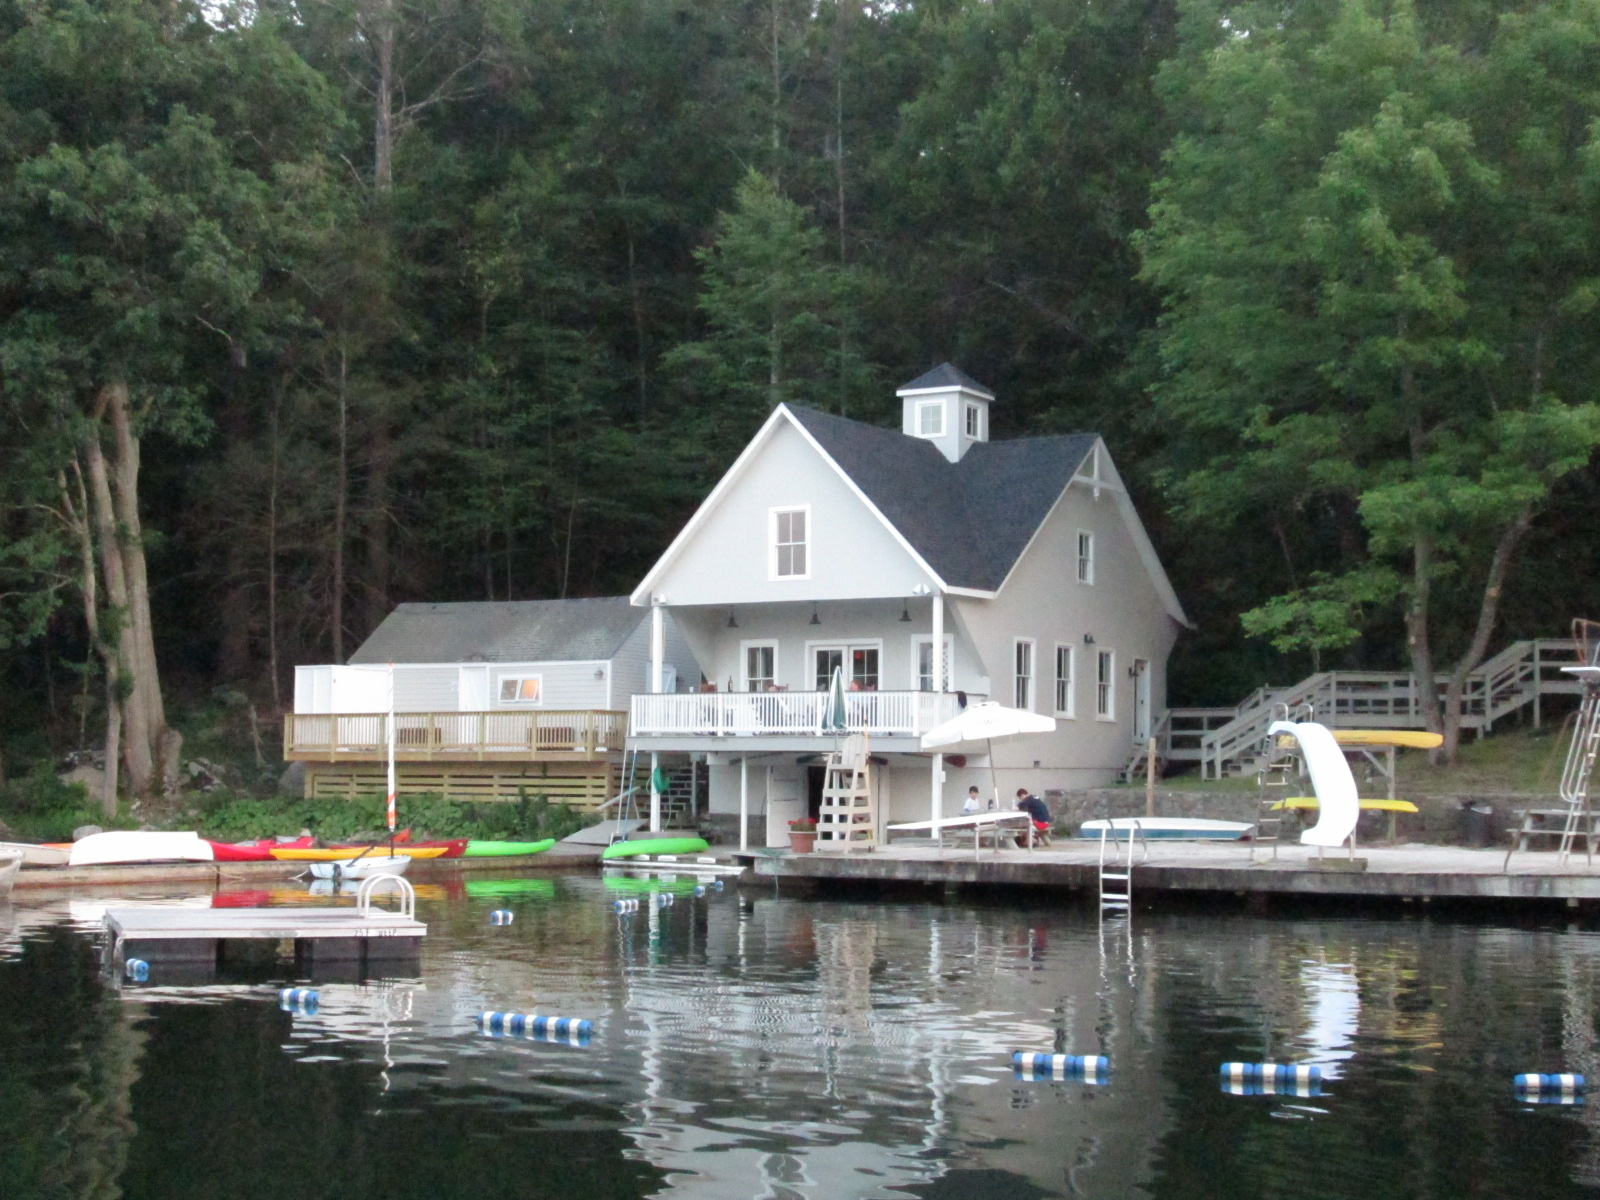 2016 photo of the Waccabuc Country Club's boathouse at their beachfront on the lake